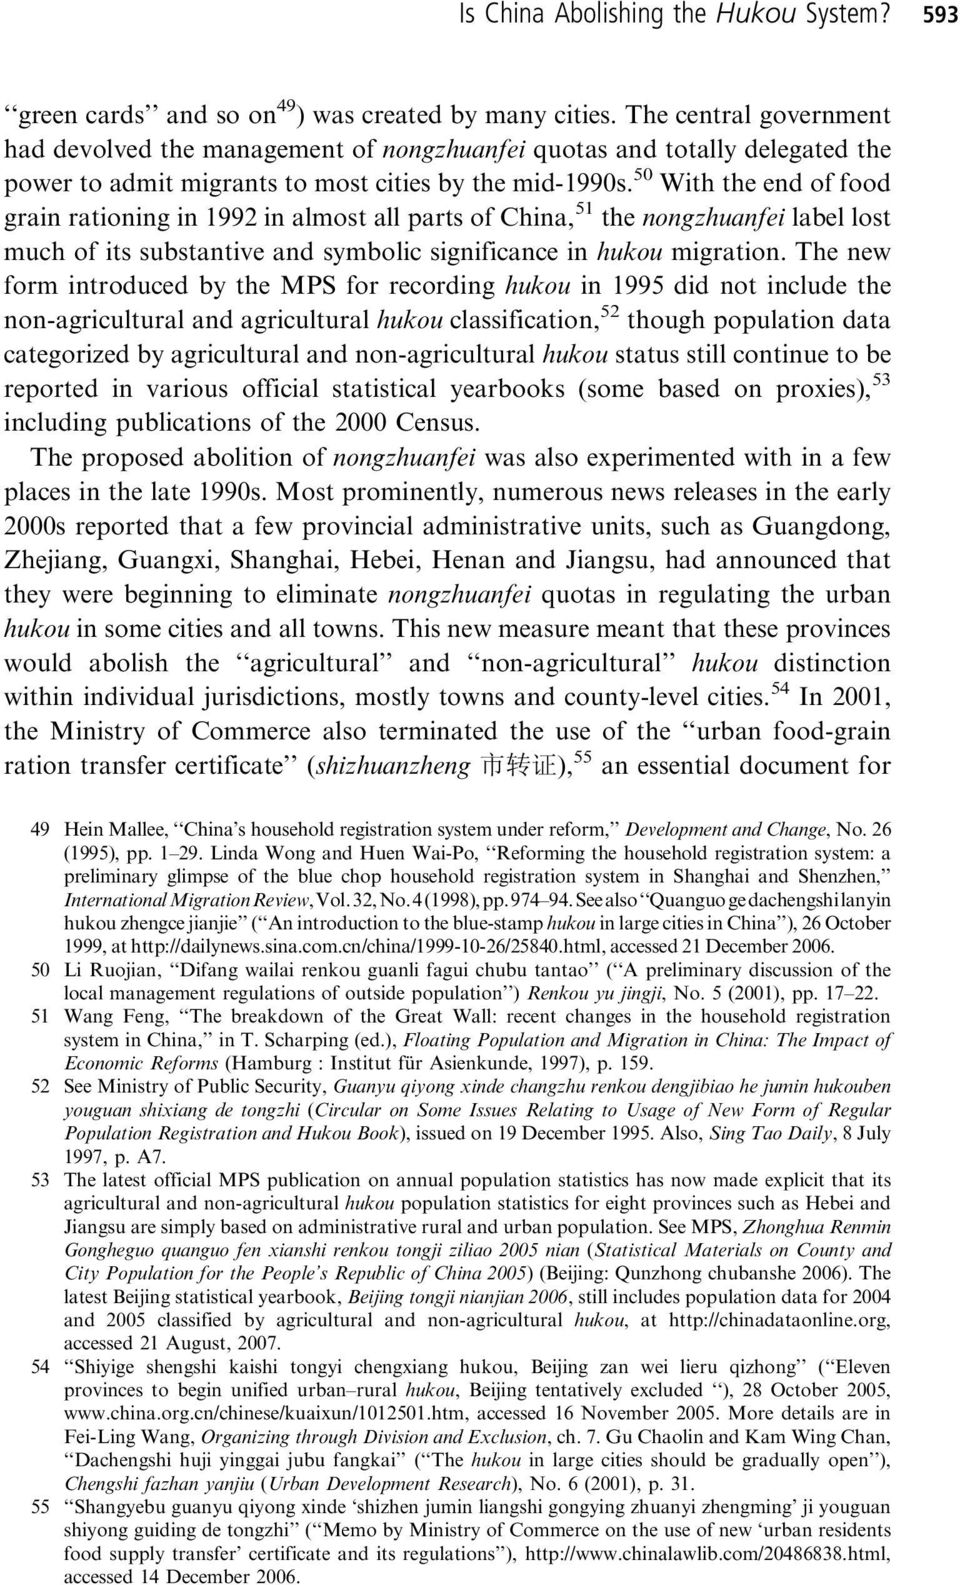 50 With the end of food grain rationing in 1992 in almost all parts of China, 51 the nongzhuanfei label lost much of its substantive and symbolic significance in hukou migration.